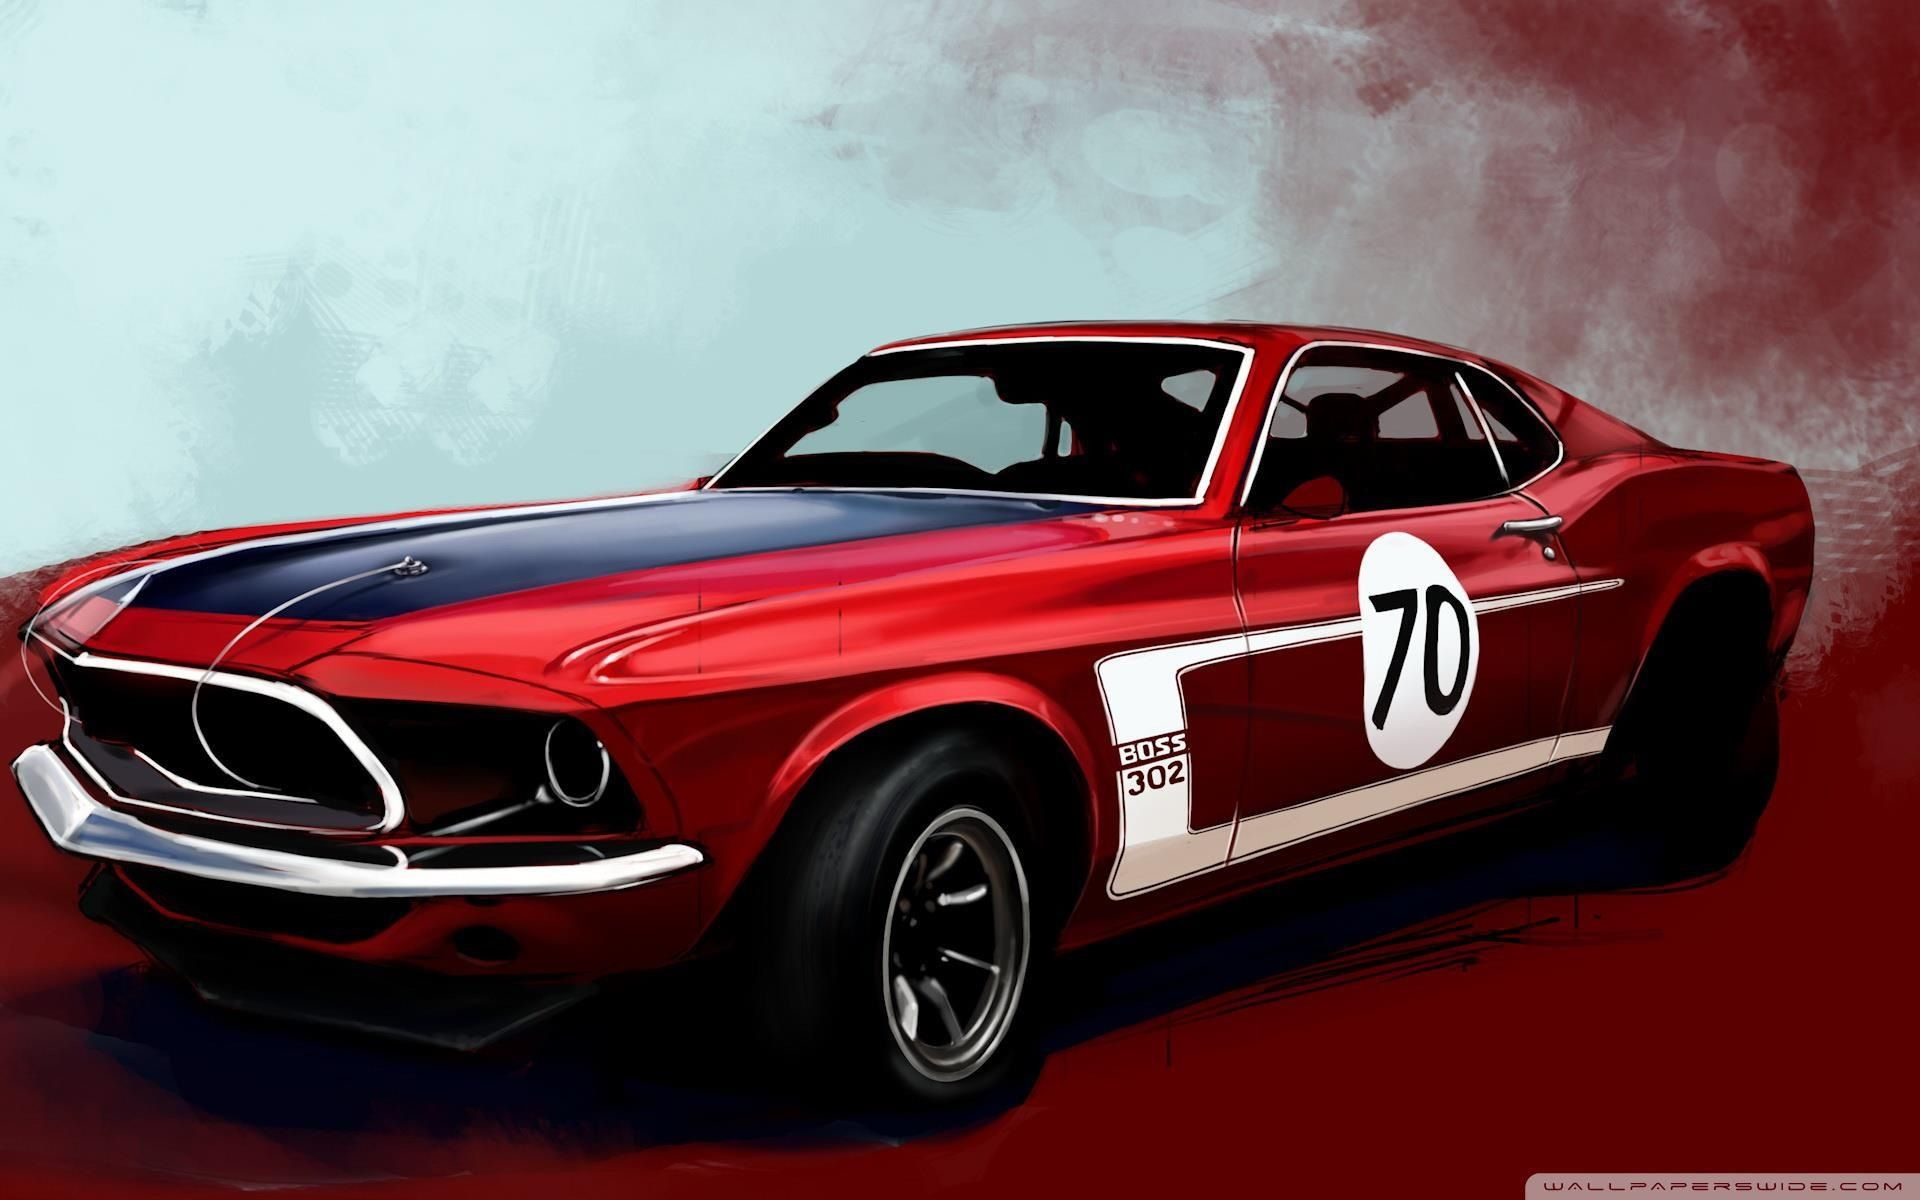 69 BOSS 302 | Old Ca